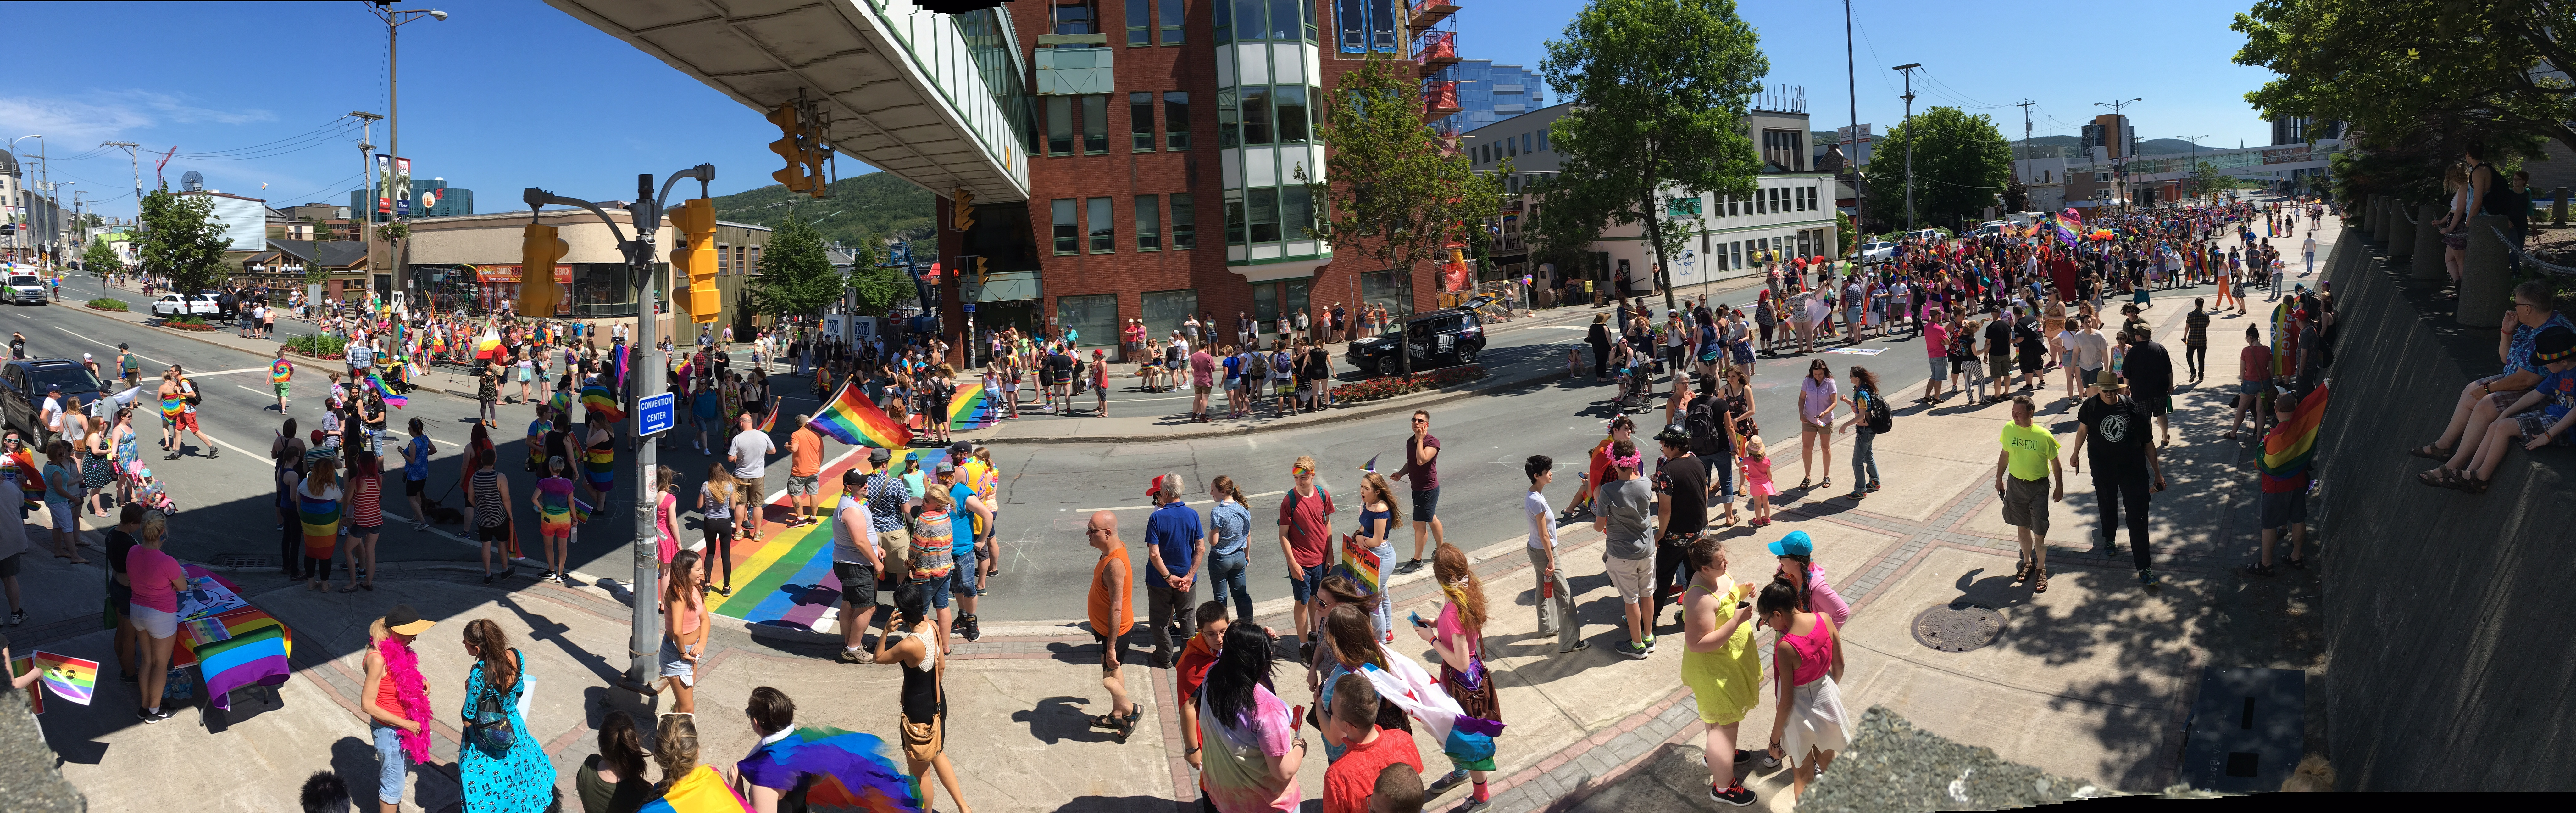 Everyone gets prepped to pass over the rainbow crosswalk that marks the beginning. - City Hall - New Gower street